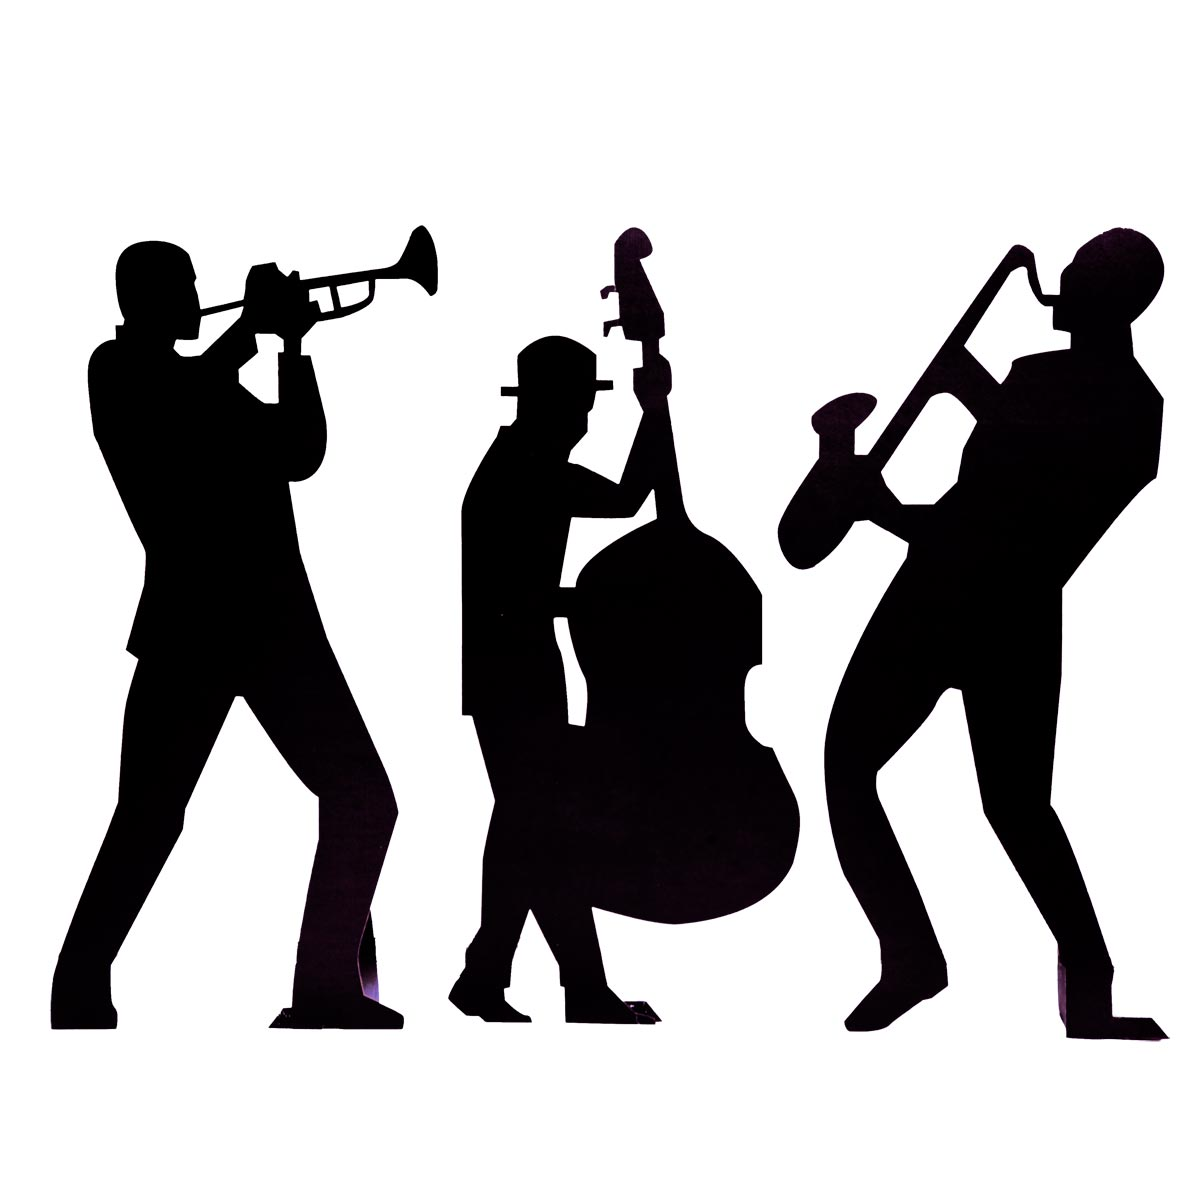 Free jazz clipart images clipart royalty free library Free Jazz Band Cliparts, Download Free Clip Art, Free Clip Art on ... clipart royalty free library